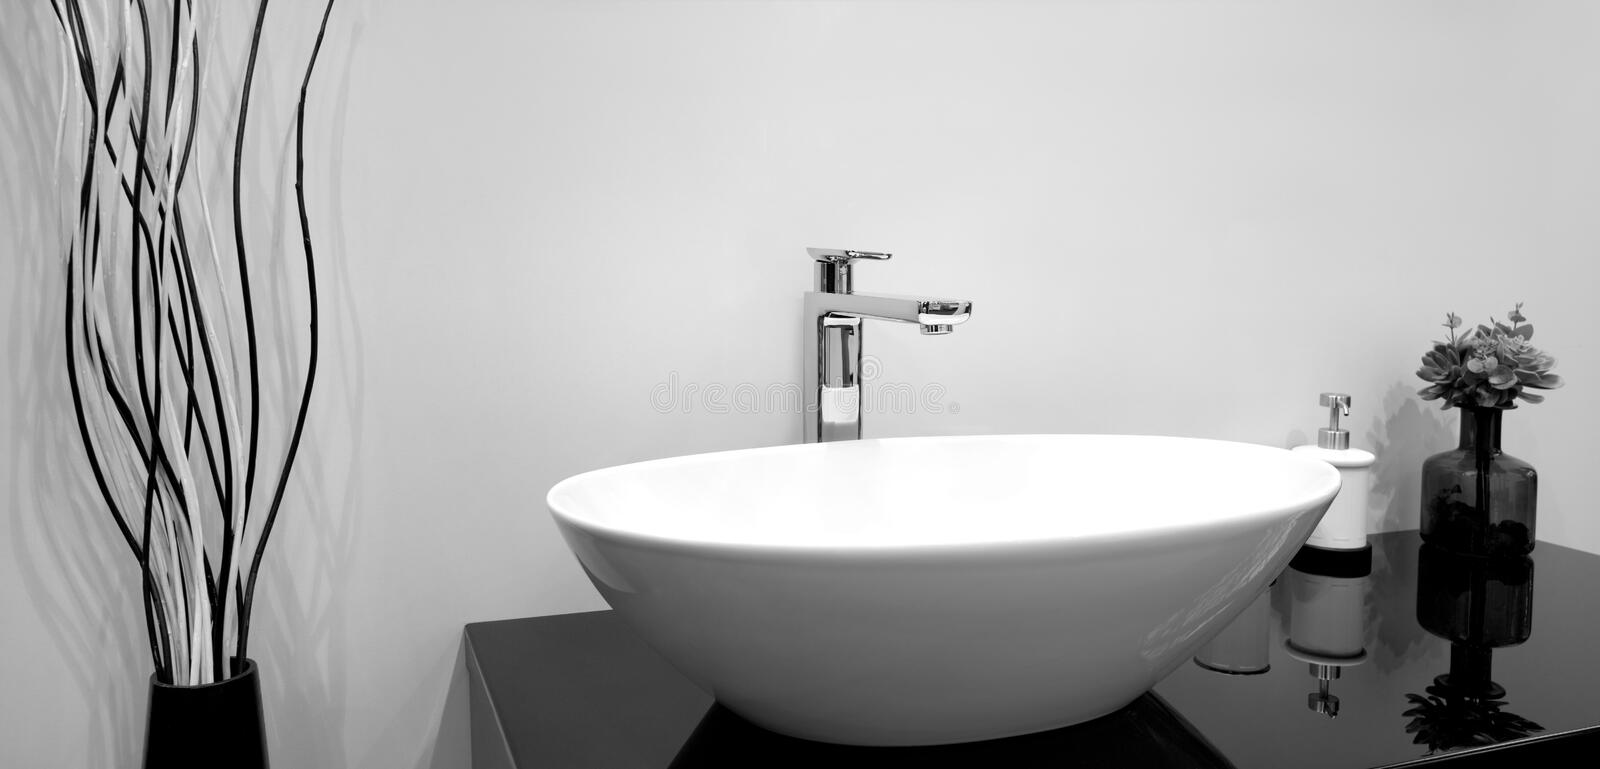 Luxury modern style faucet mixer on a white sink in a beautiful gray and white bathroom royalty free stock photography